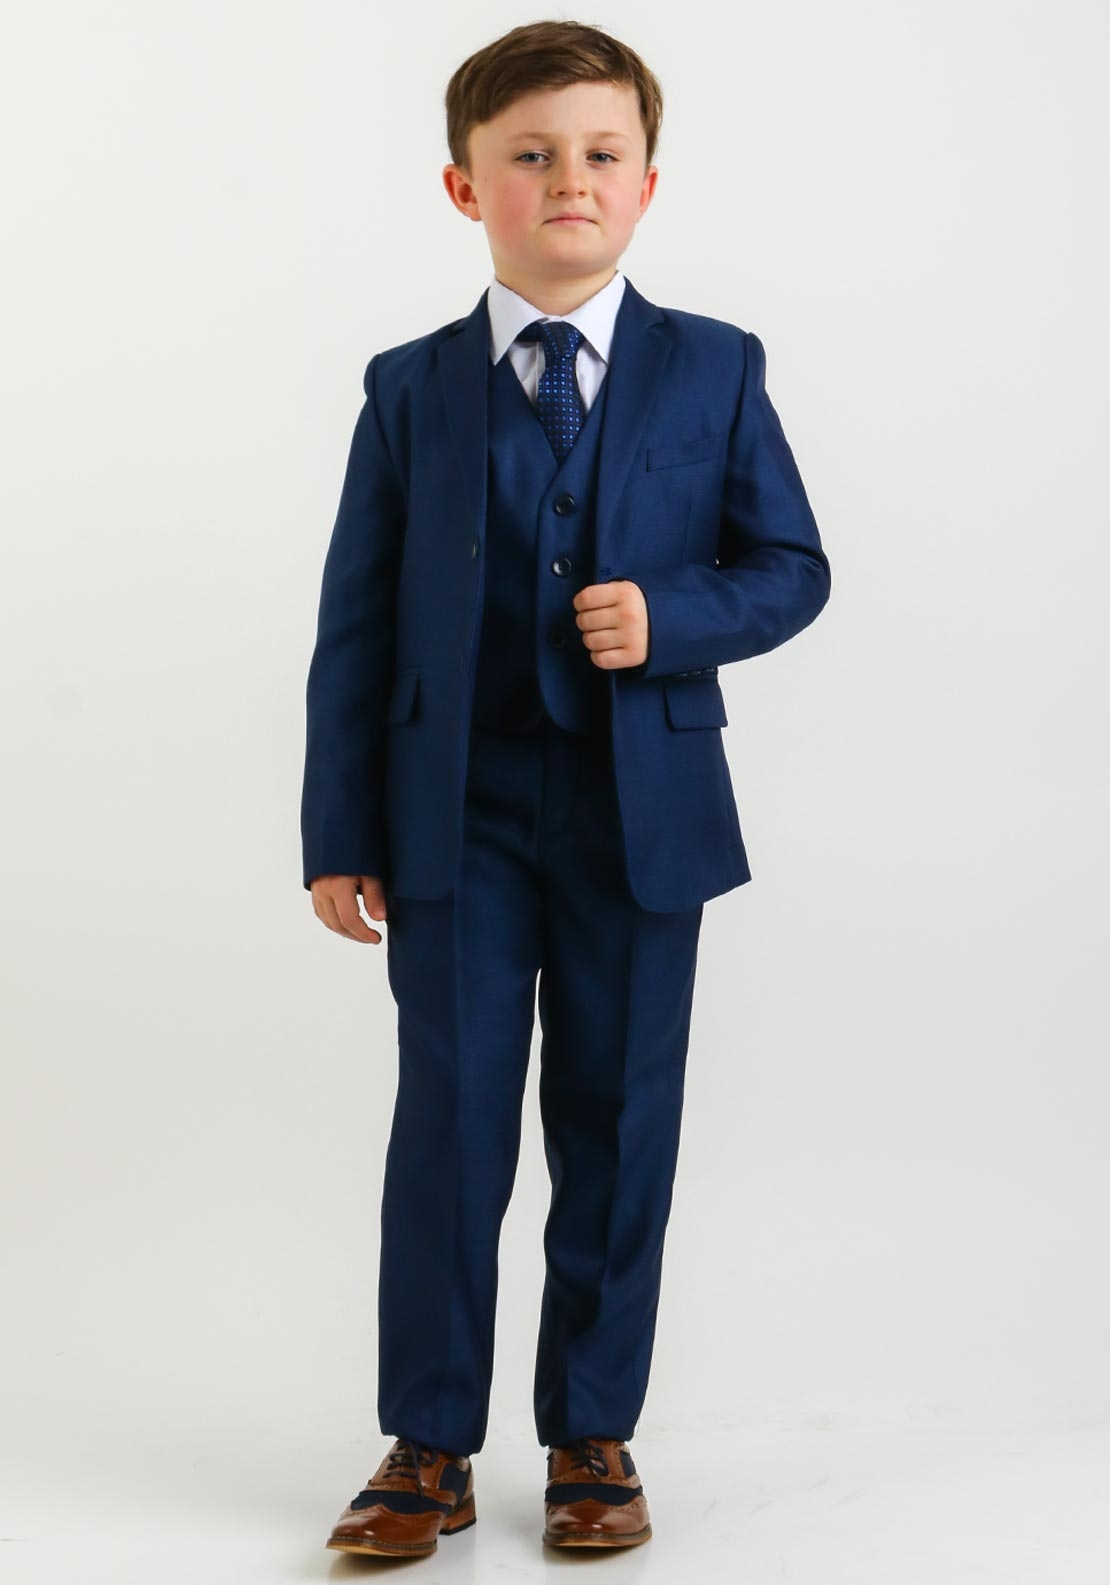 McElhinneys 3 Piece Suit with Shirt and Tie, Navy